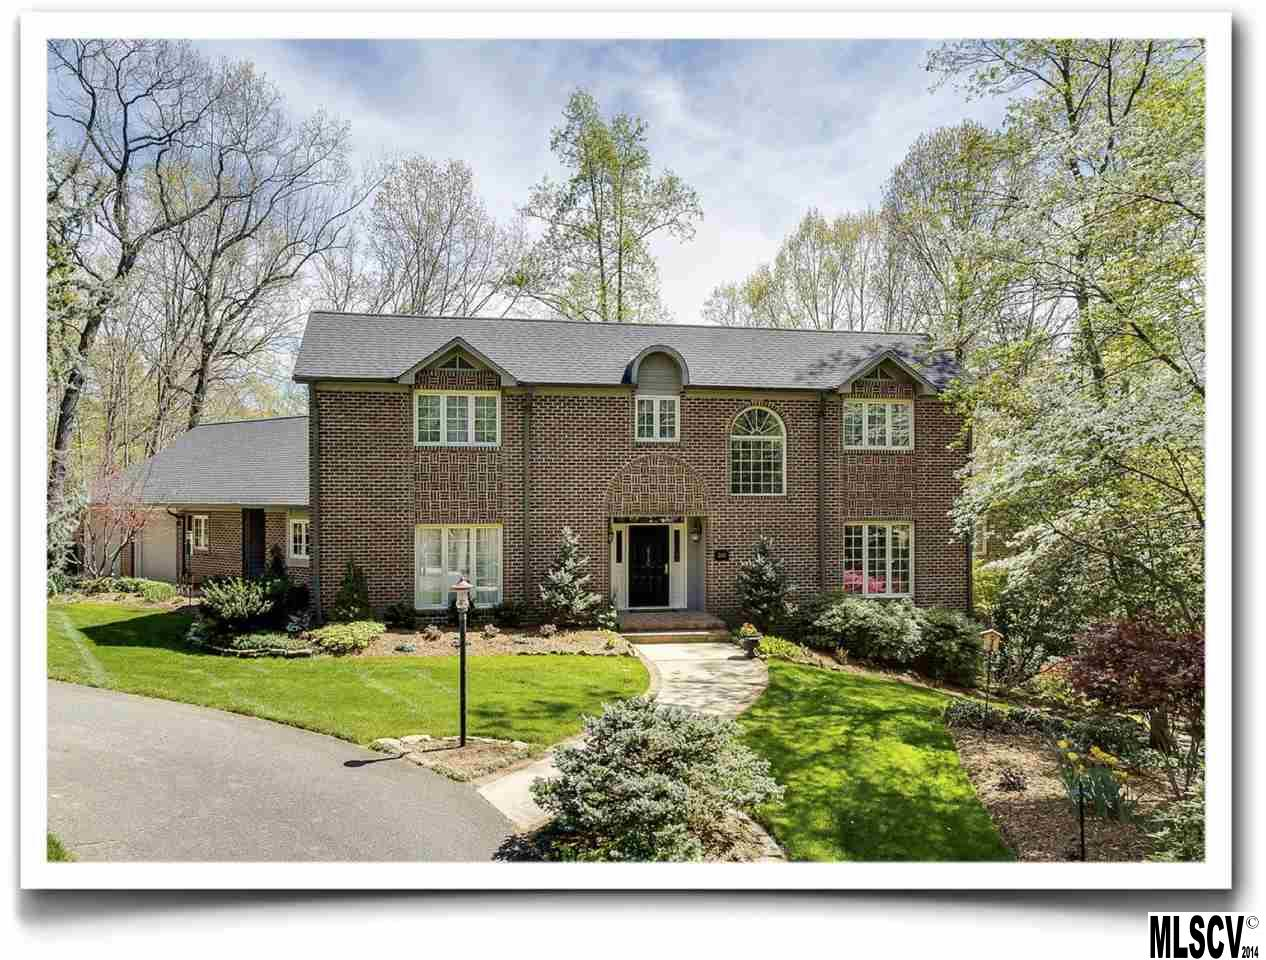 2140 9th St Nw, Hickory, NC 28601